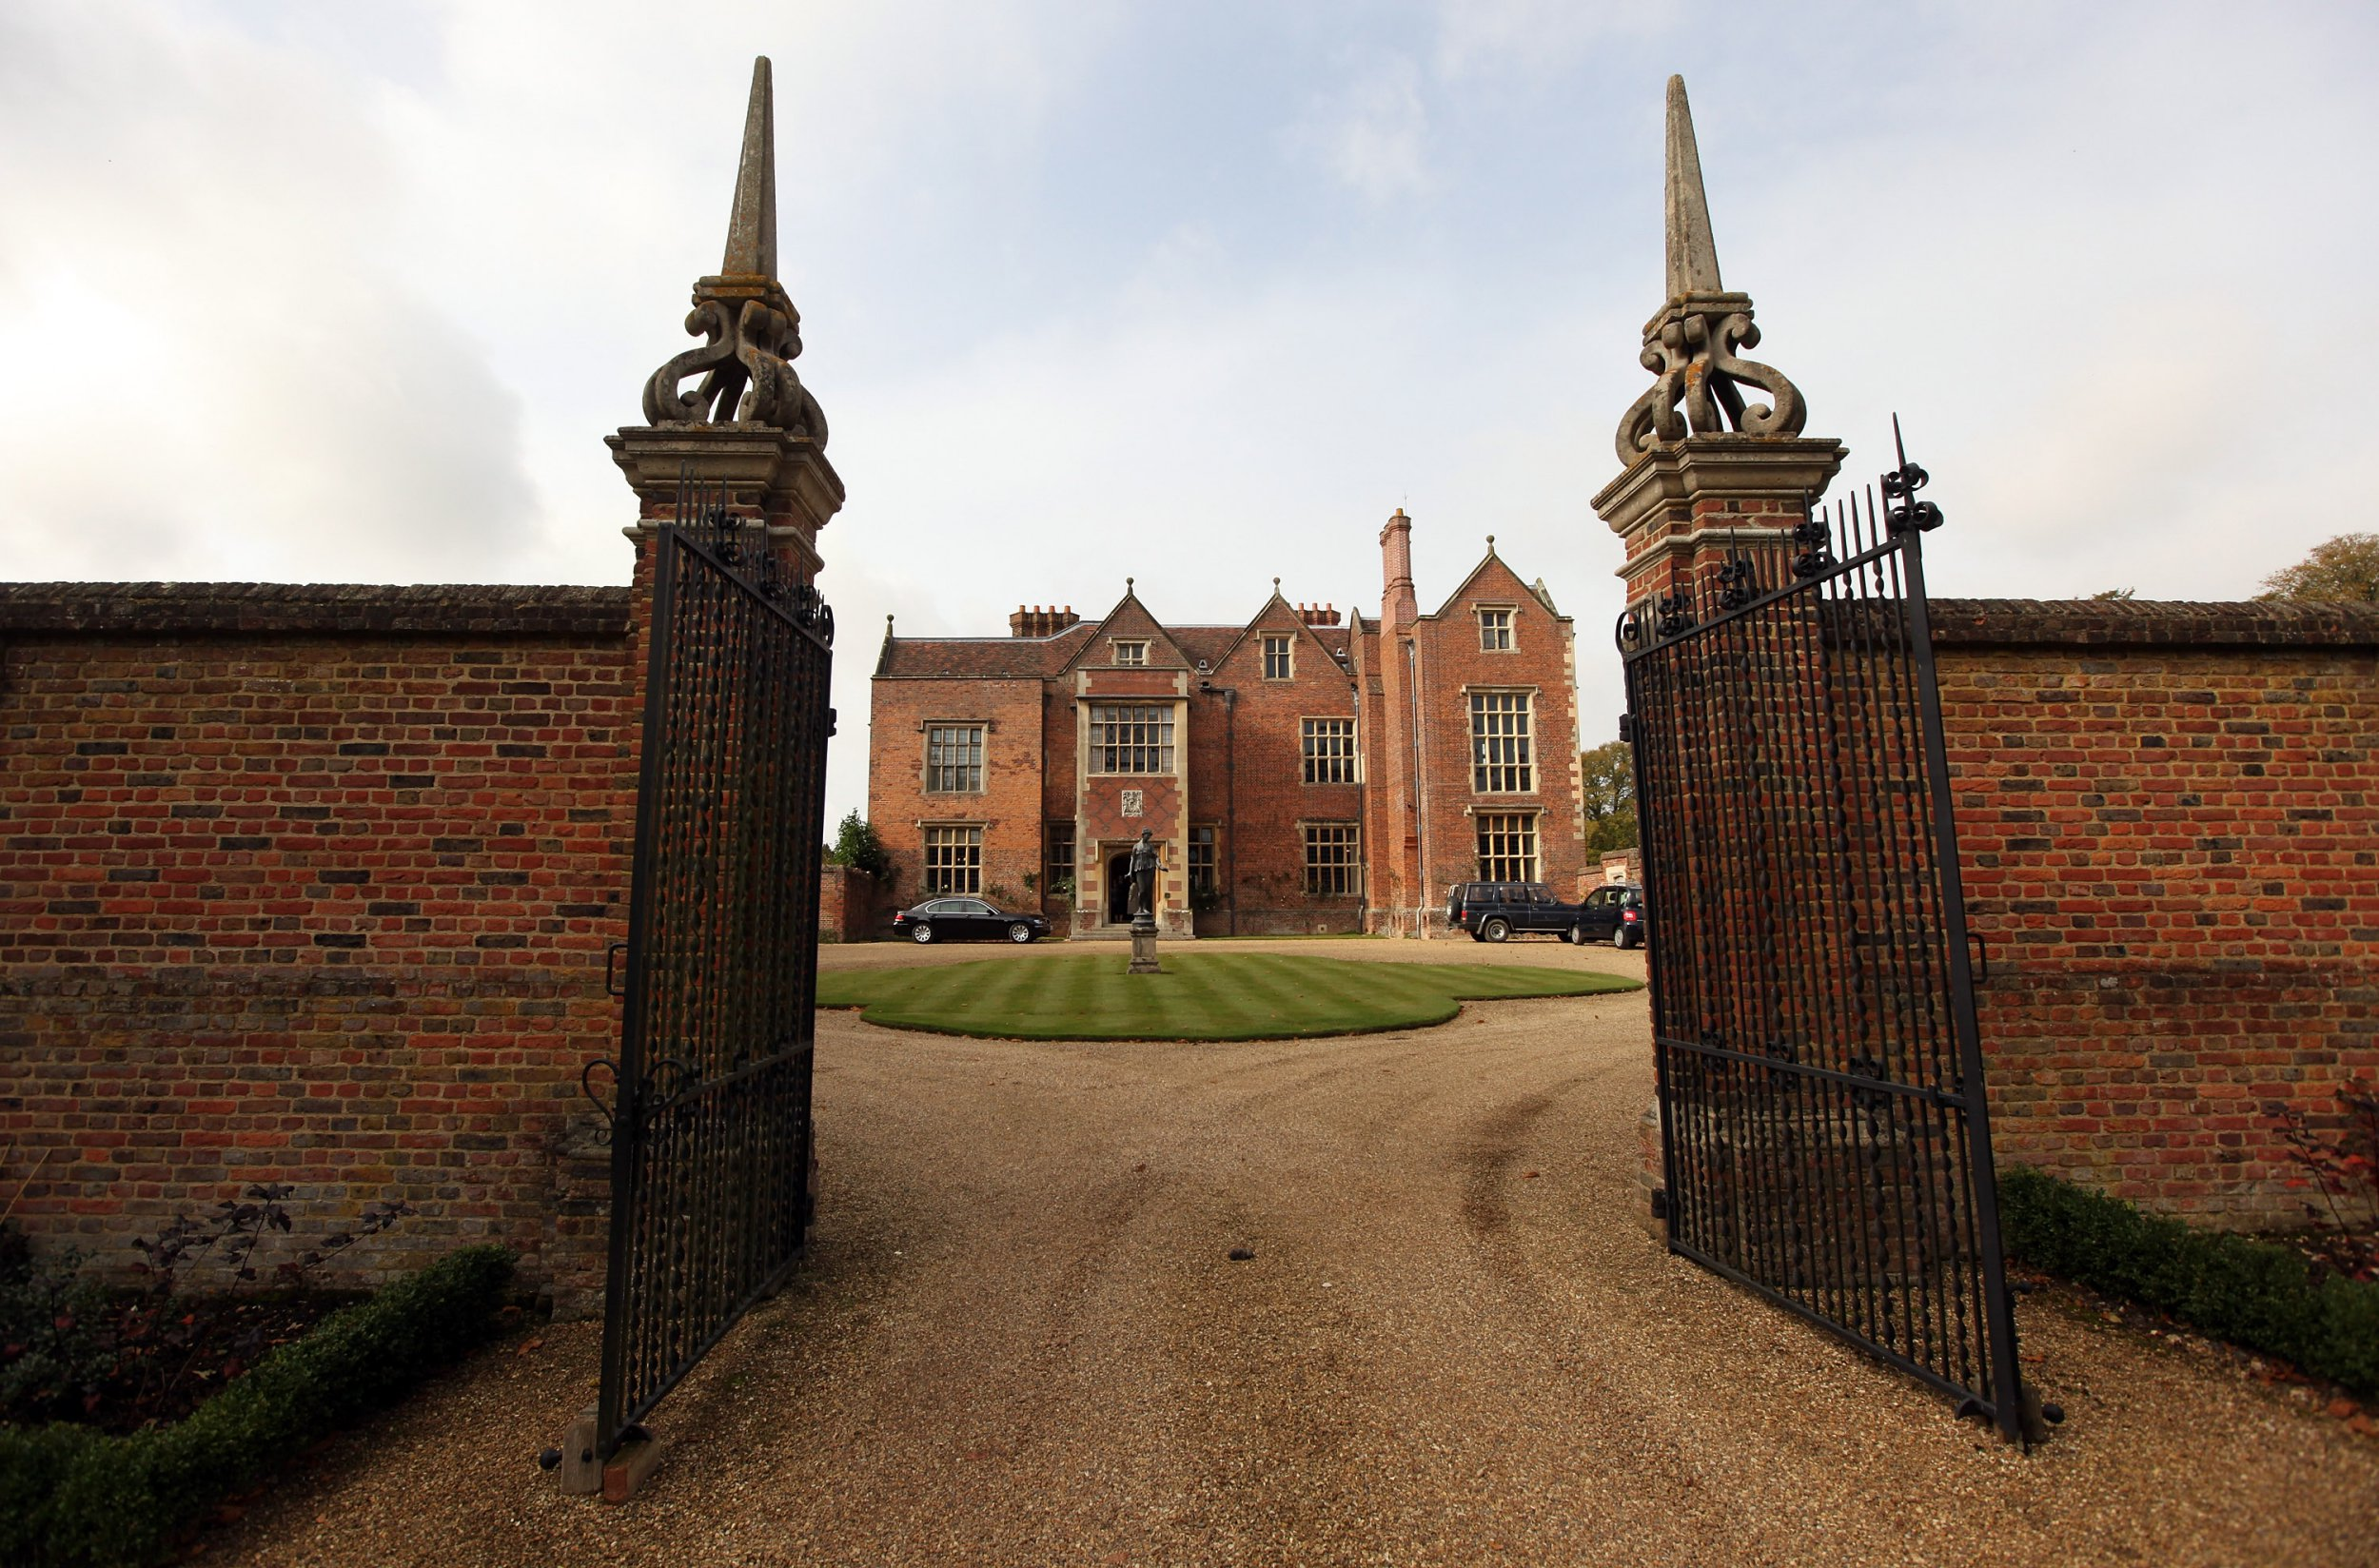 Prime Minister of the UK's country residence, Chequers